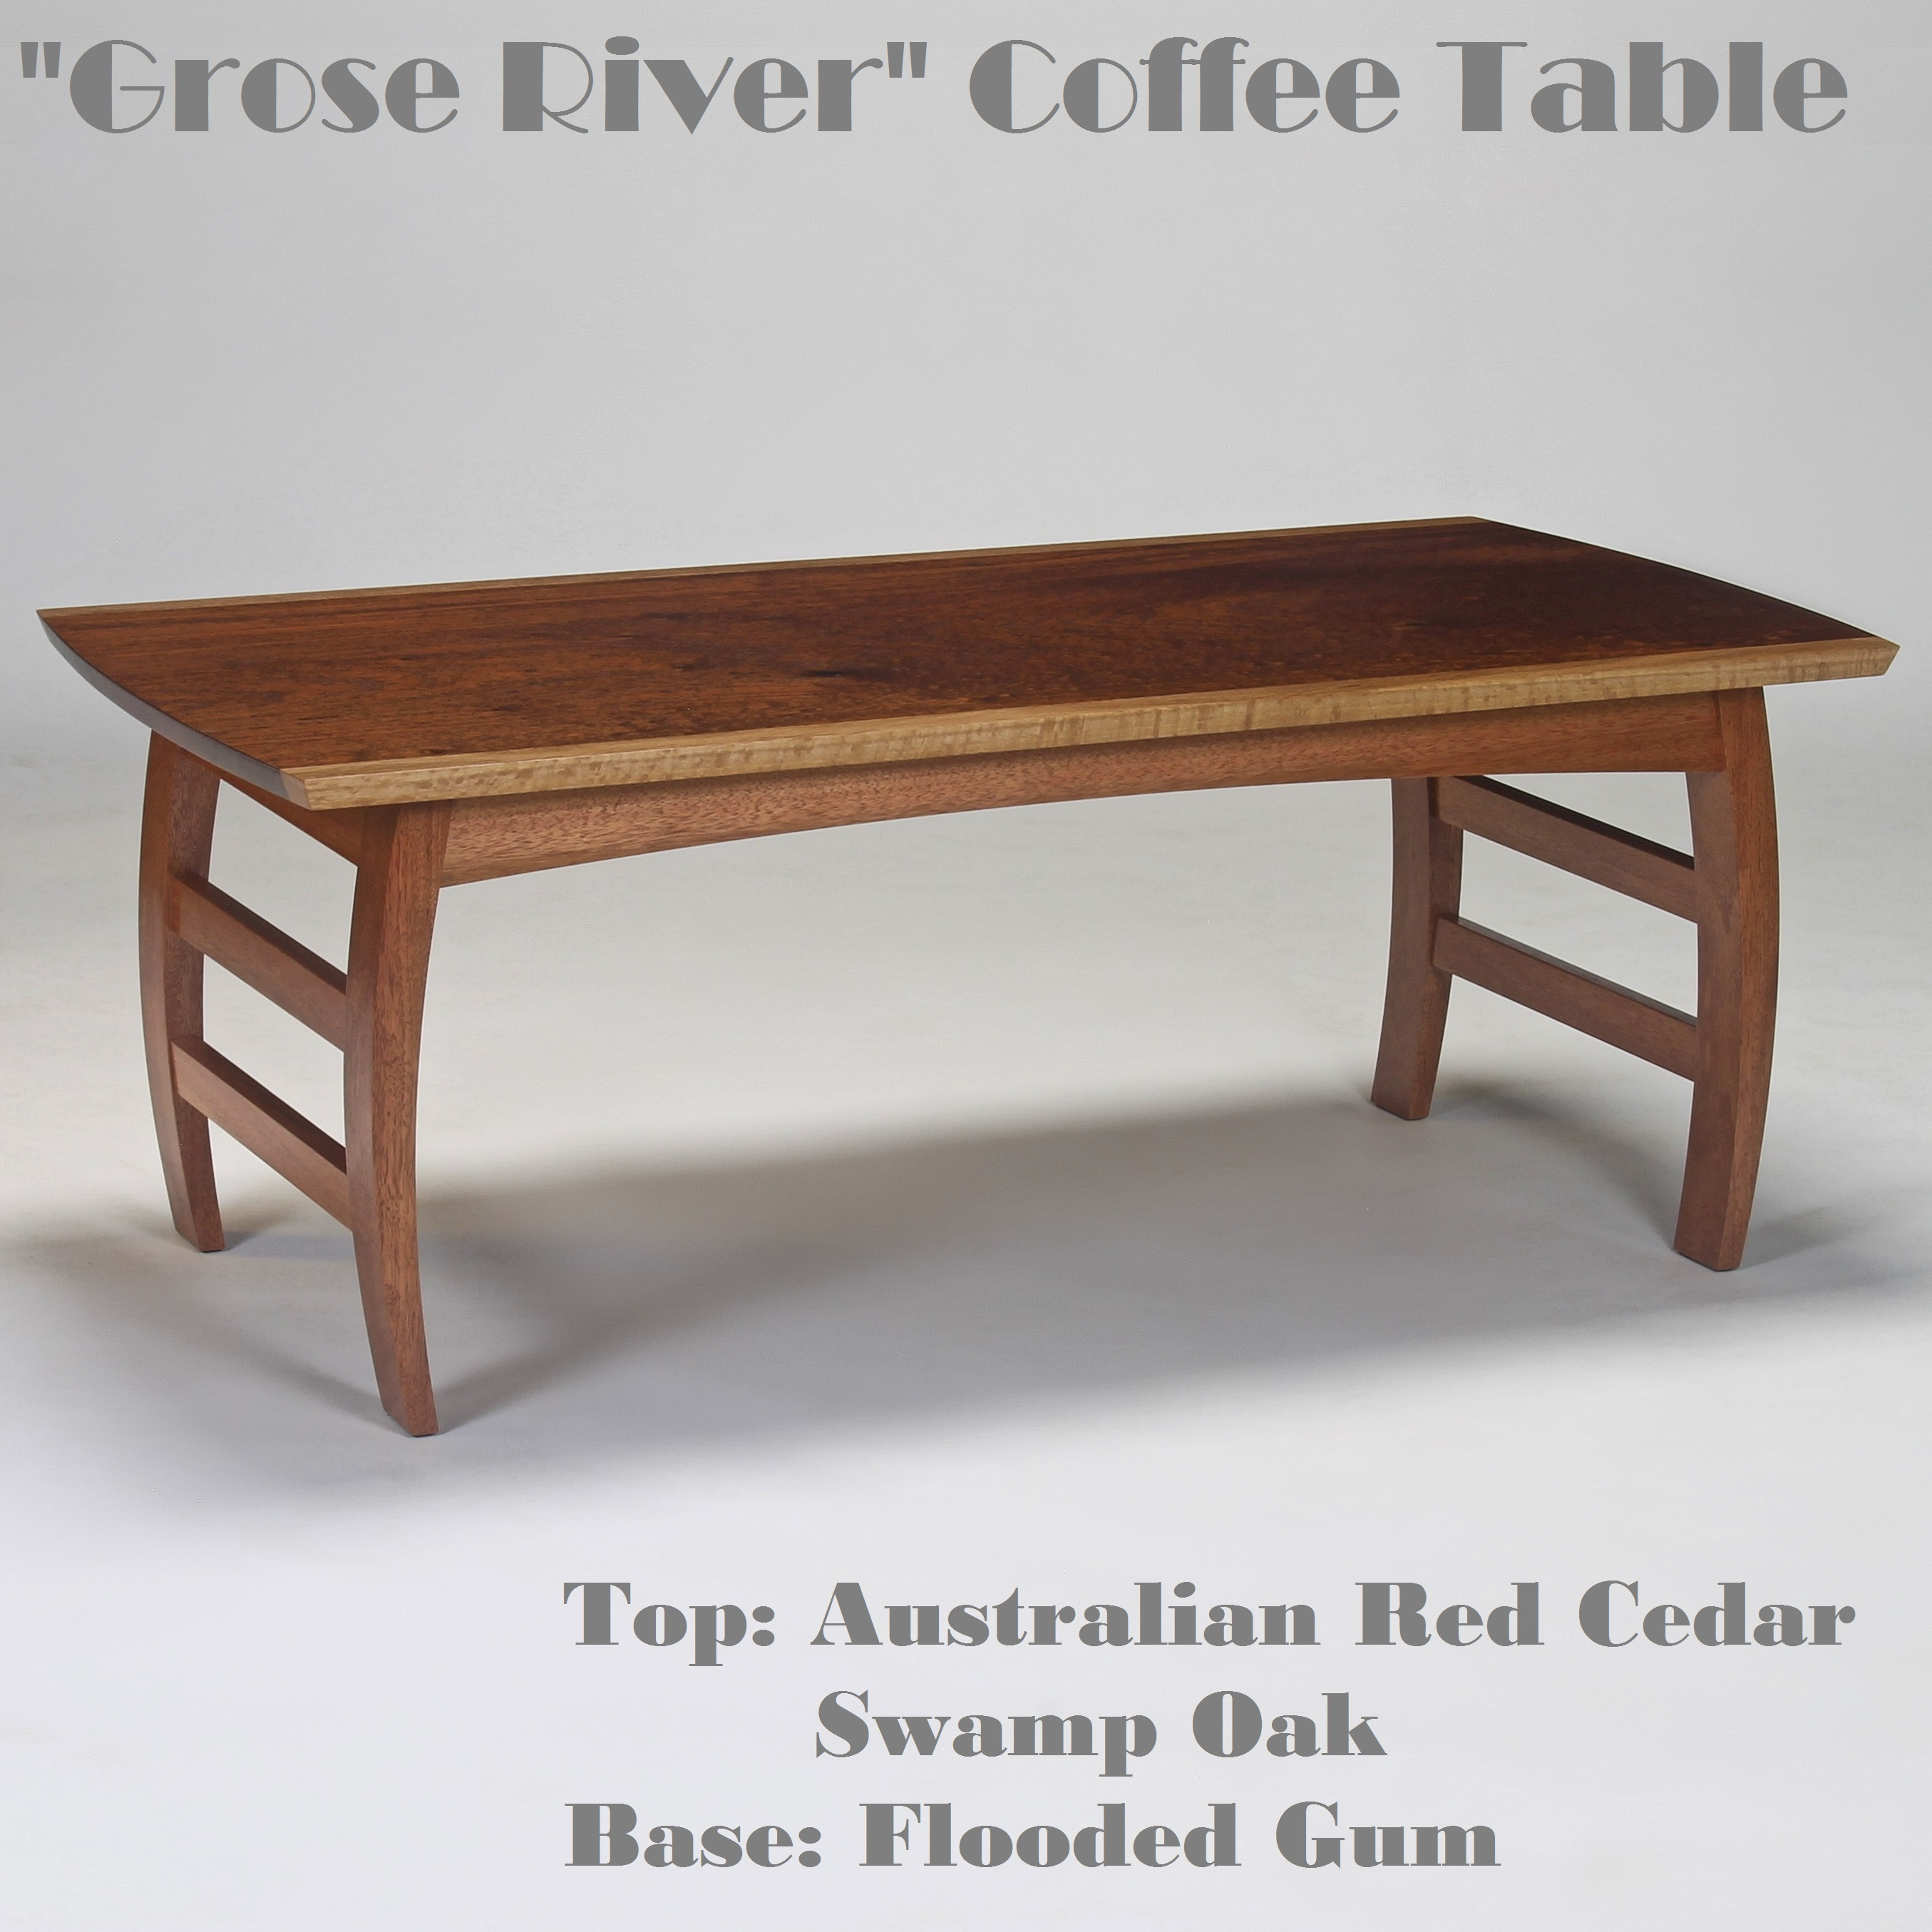 Grose River Coffee Table 1 Website